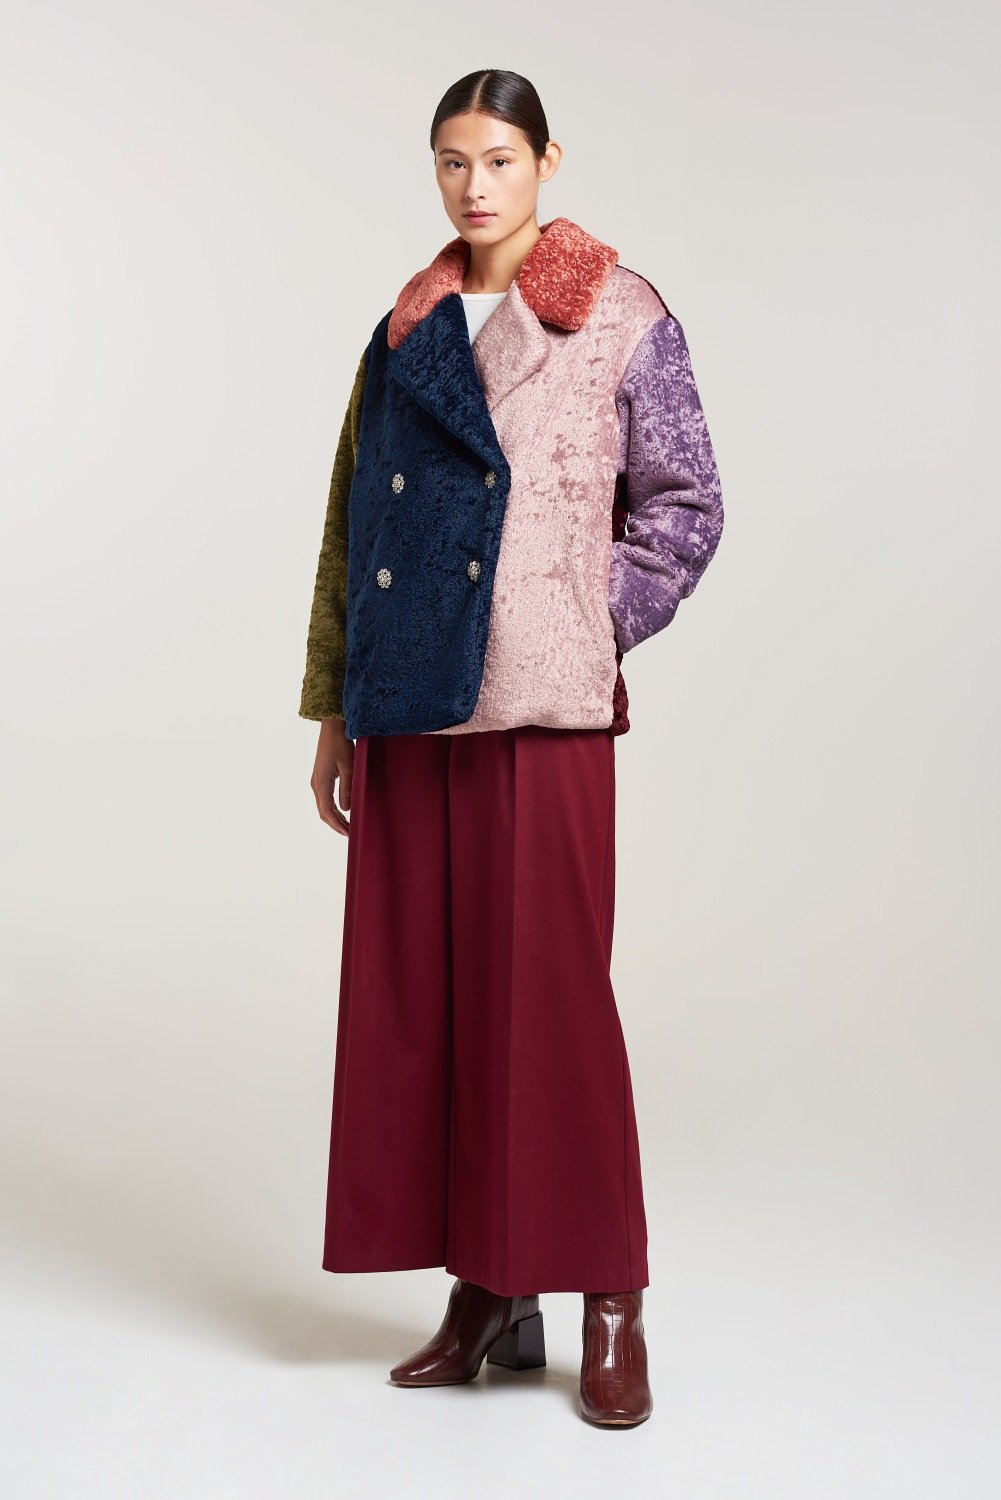 Load image into Gallery viewer, Palones Multi Coloured Debbie Teddy Coat